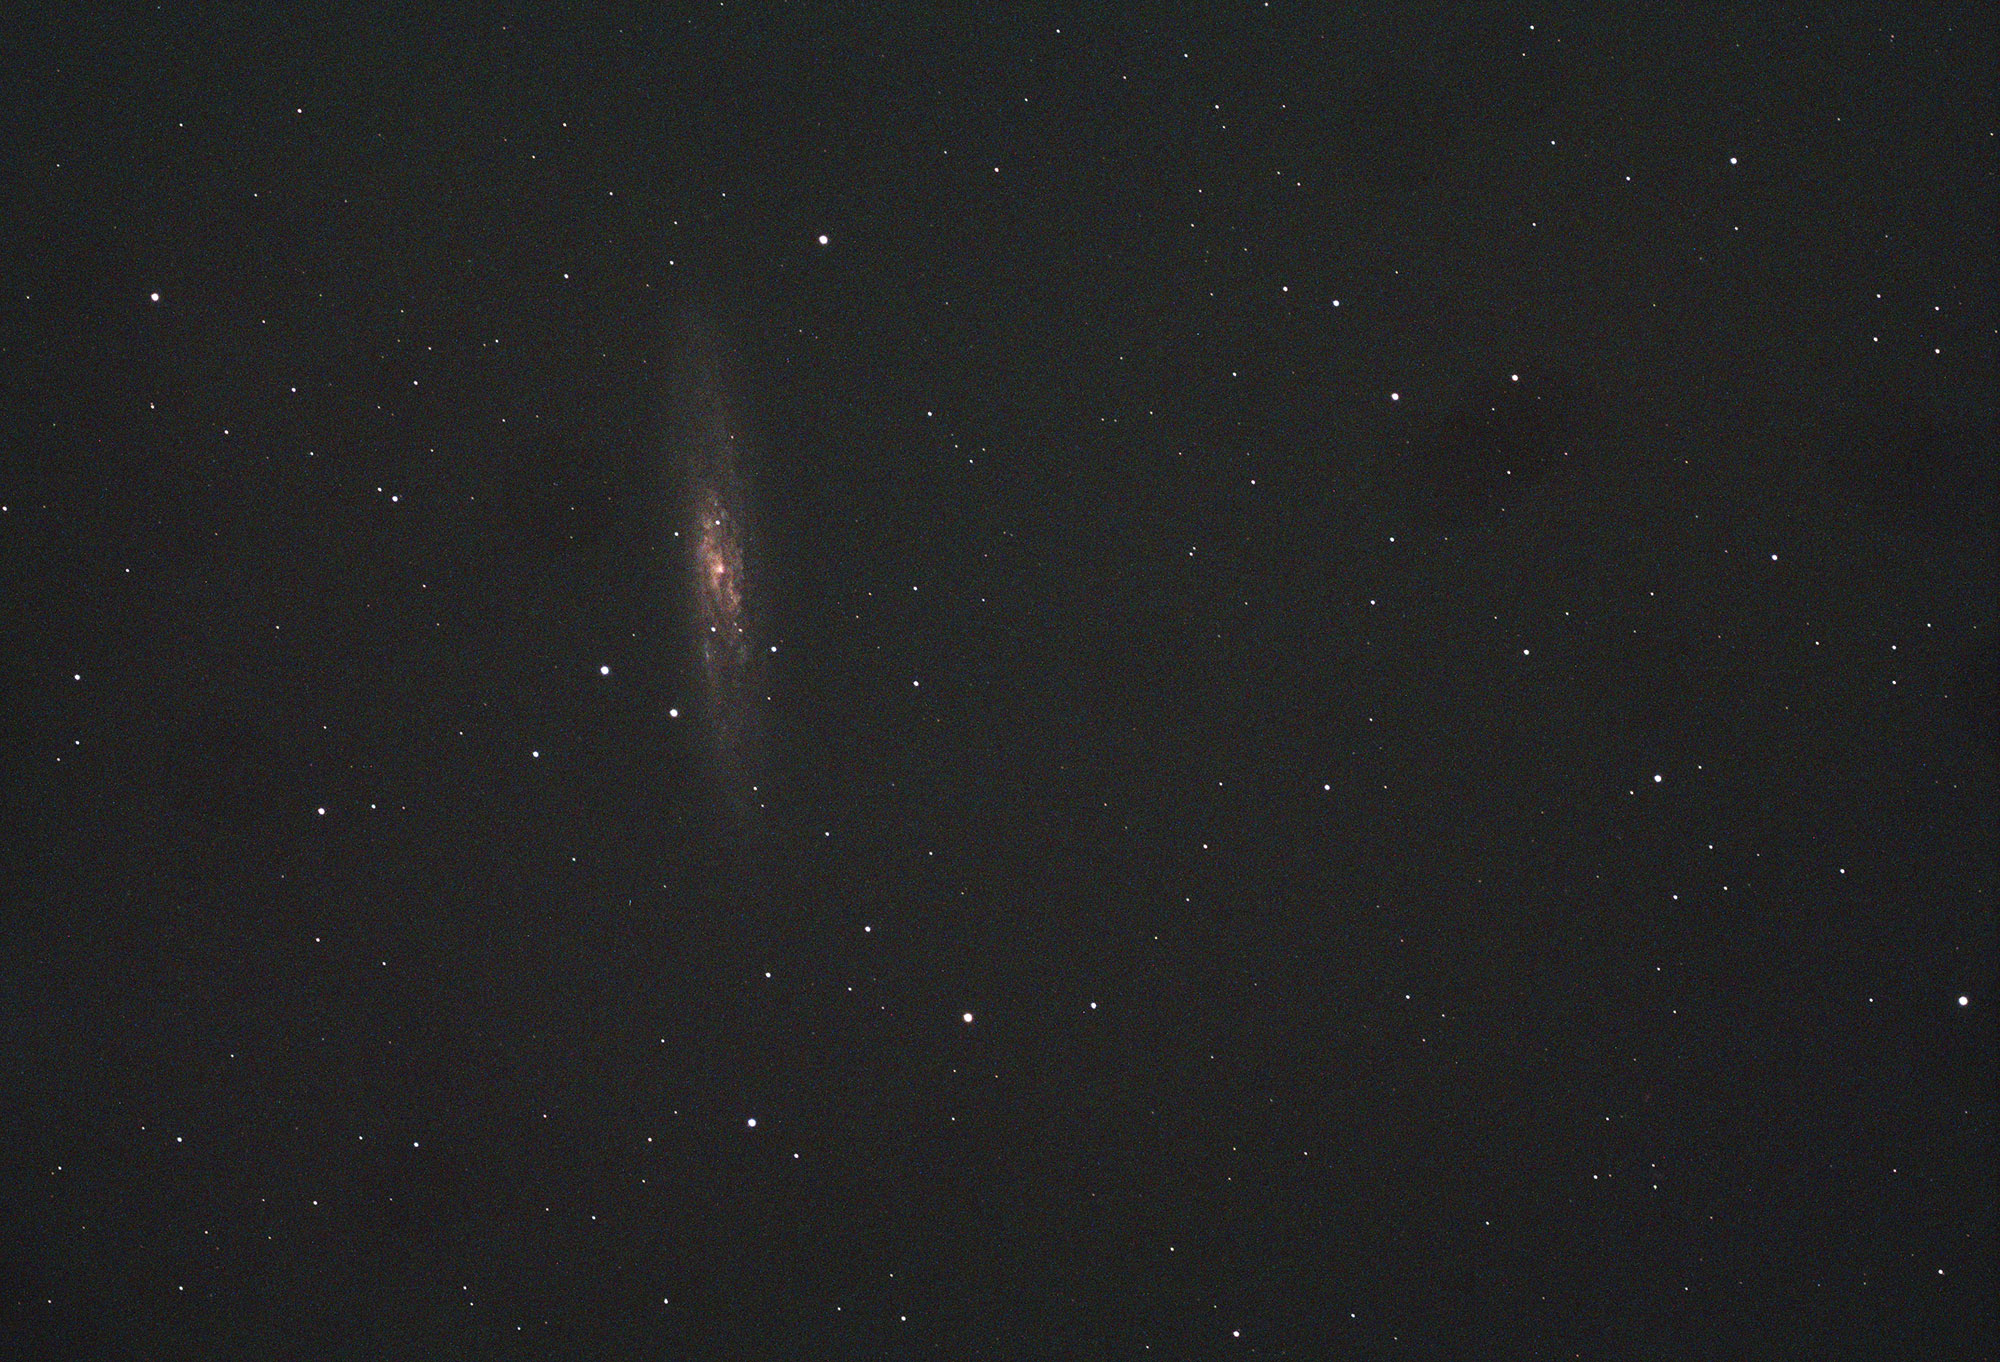 A single 60 second exposure of NGC 253 taken with a William Optics GT 102 and ASI 293 colour camera